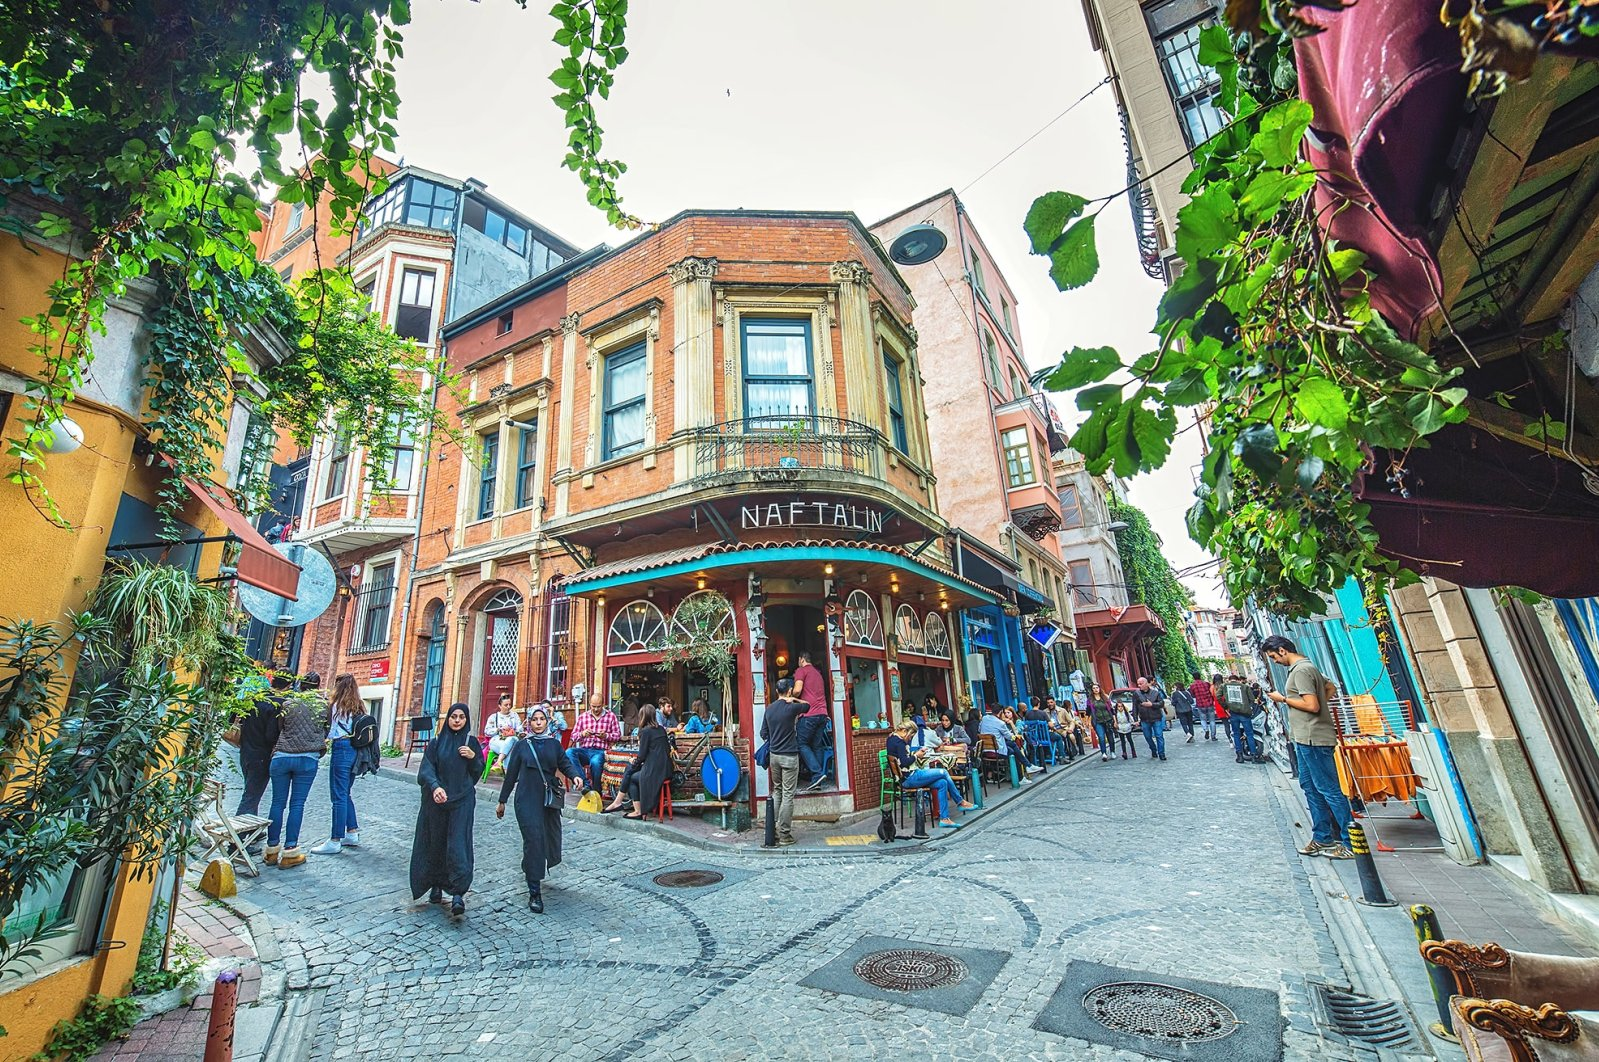 People mill about in the colorful streets and cafes of the Balat neighborhood in Istanbul, Turkey, Oct. 20, 2018. (Shutterstock Photo)